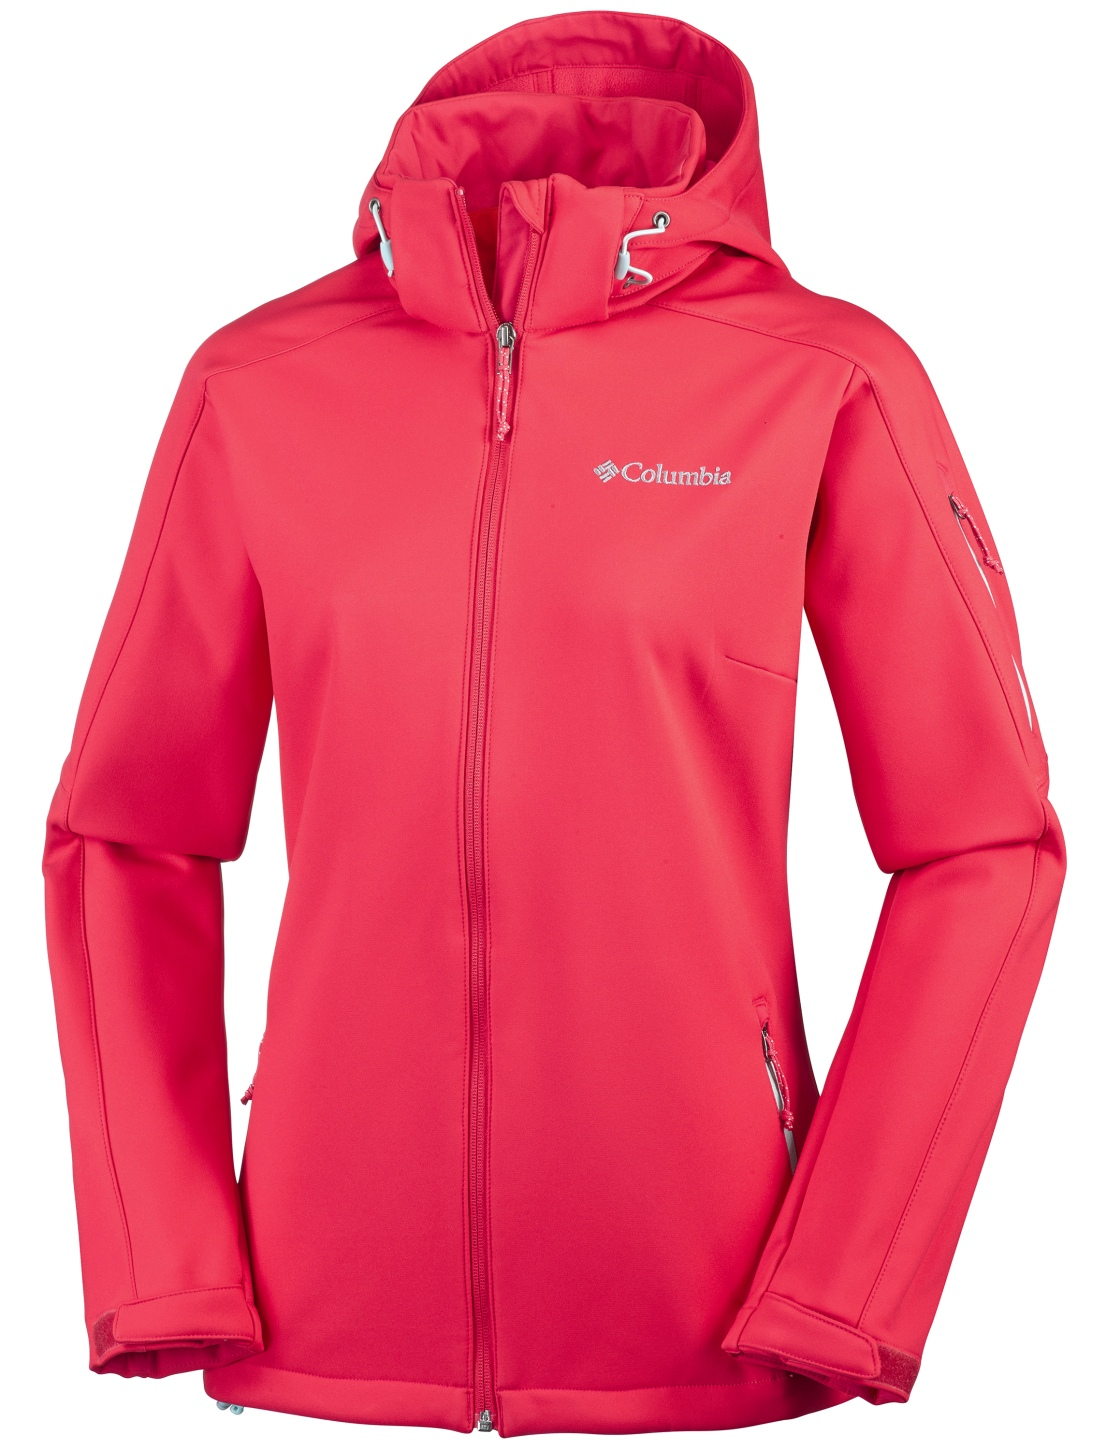 Columbia Women's Cascade Ridge Jacket Red Camellia, Spray-30